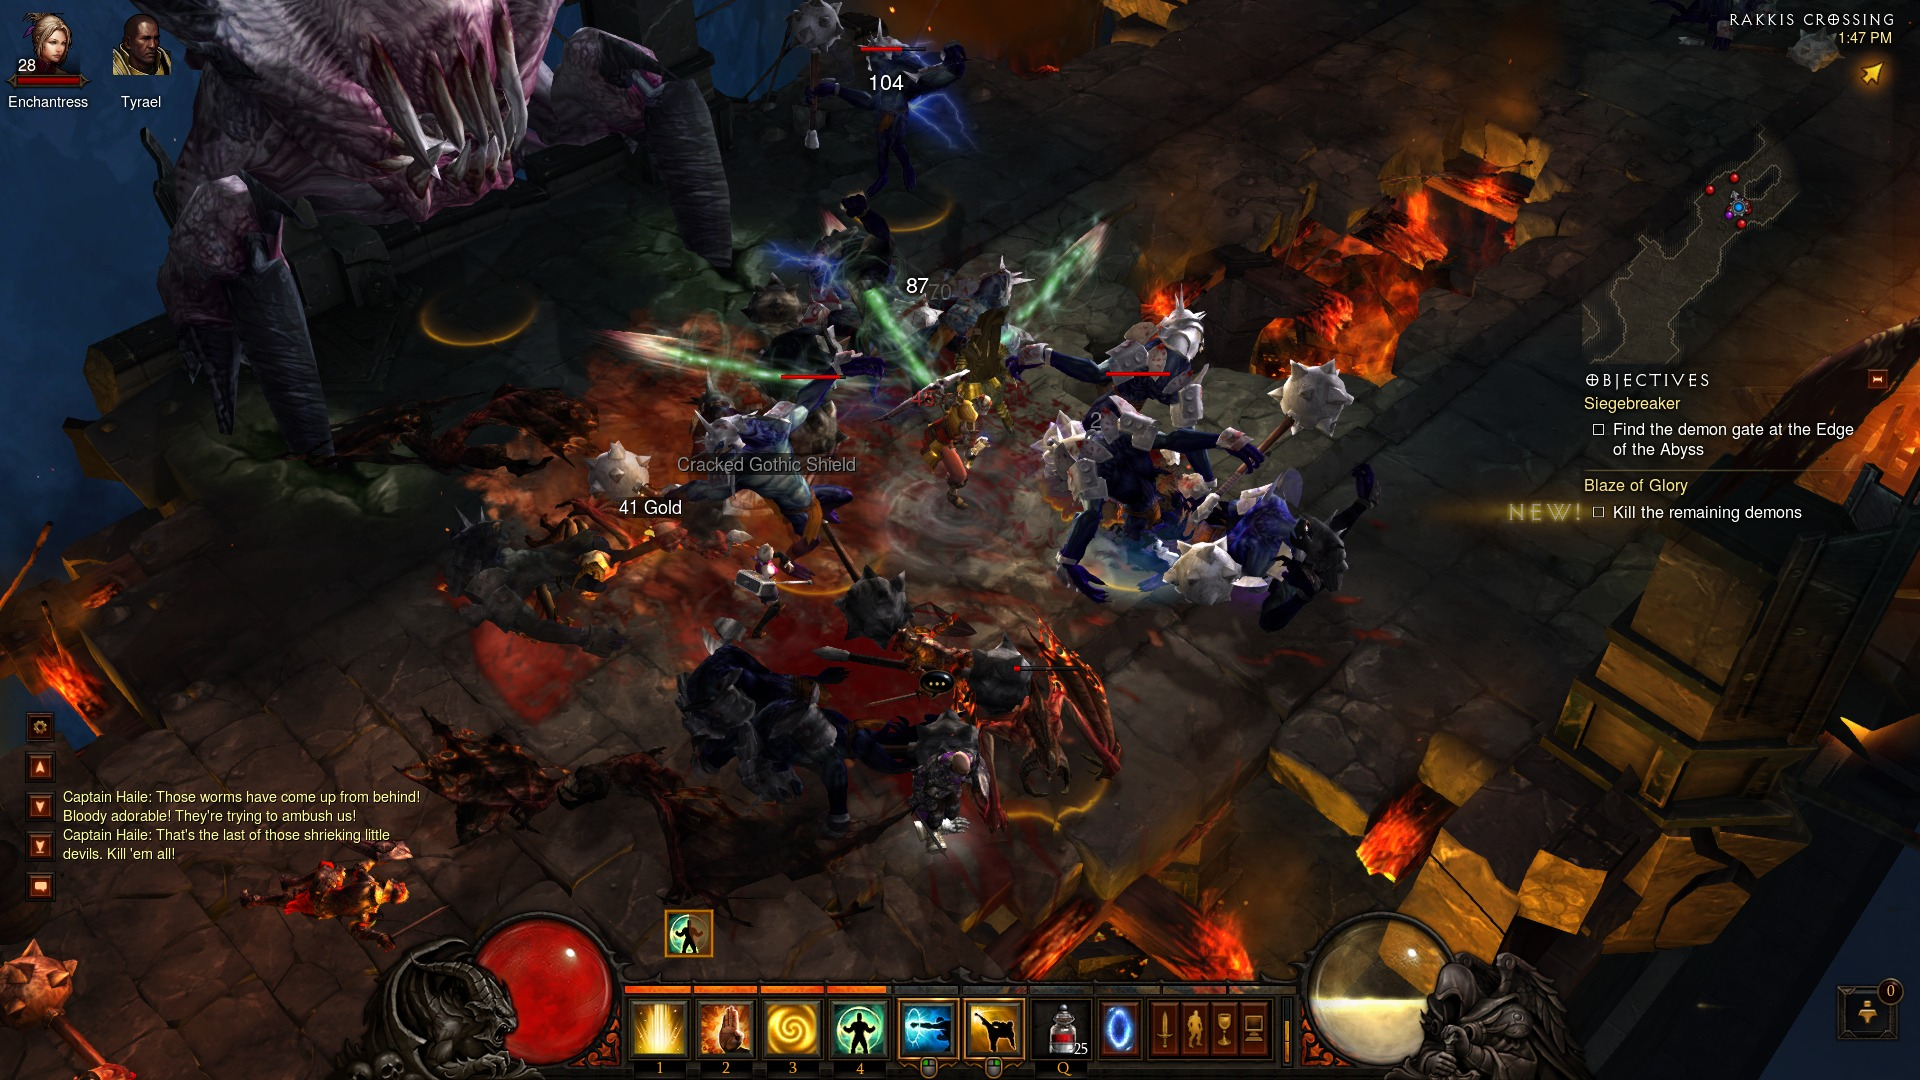 Hacked console item diablo iii general discussion diablo iii.